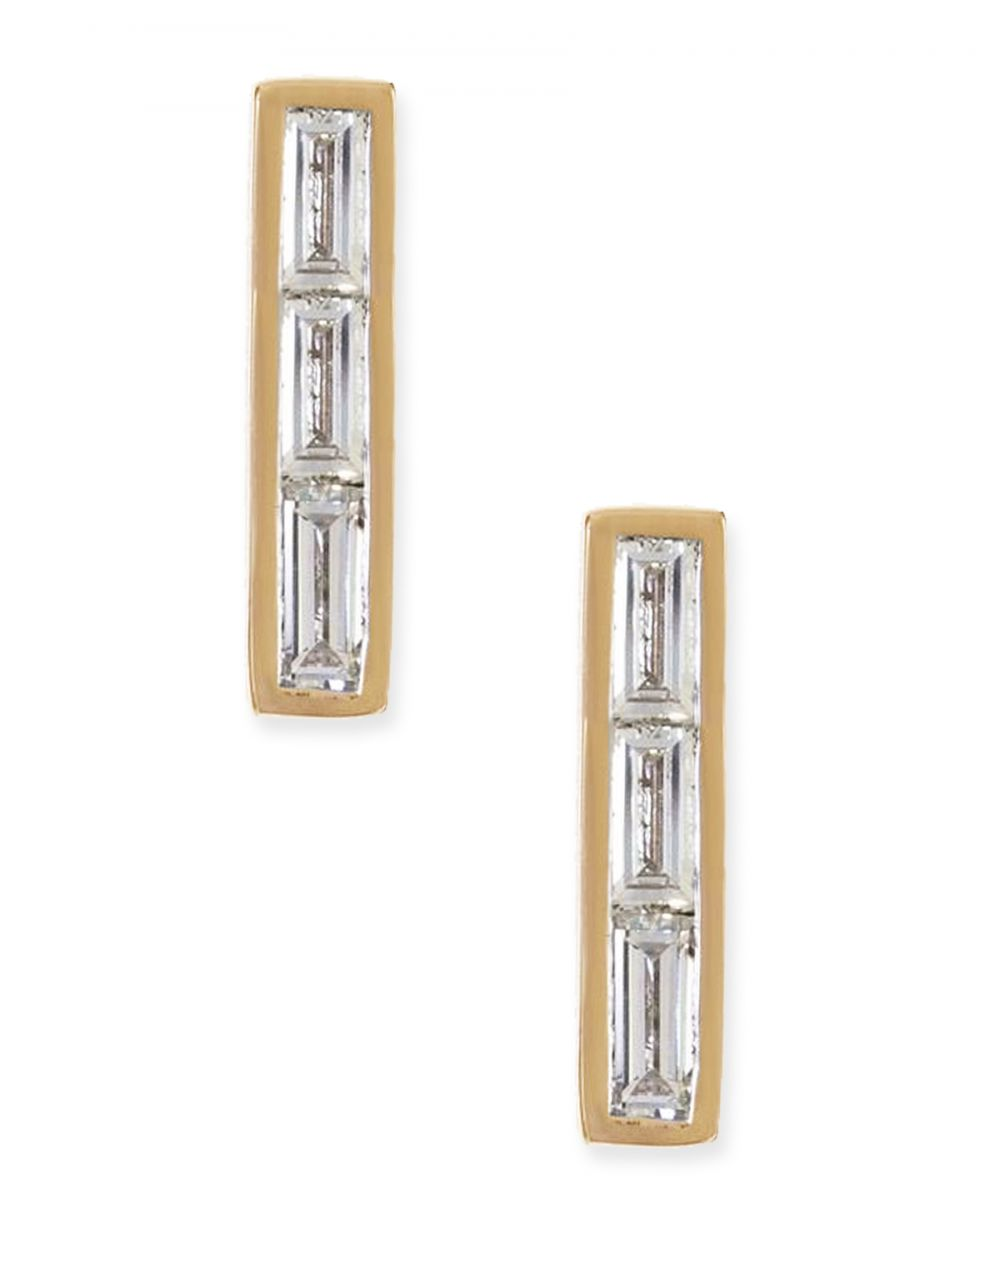 Three Baguette Stud<br /><i><small>14K Yellow Gold with White Diamonds</small></i><br /> - Eddera